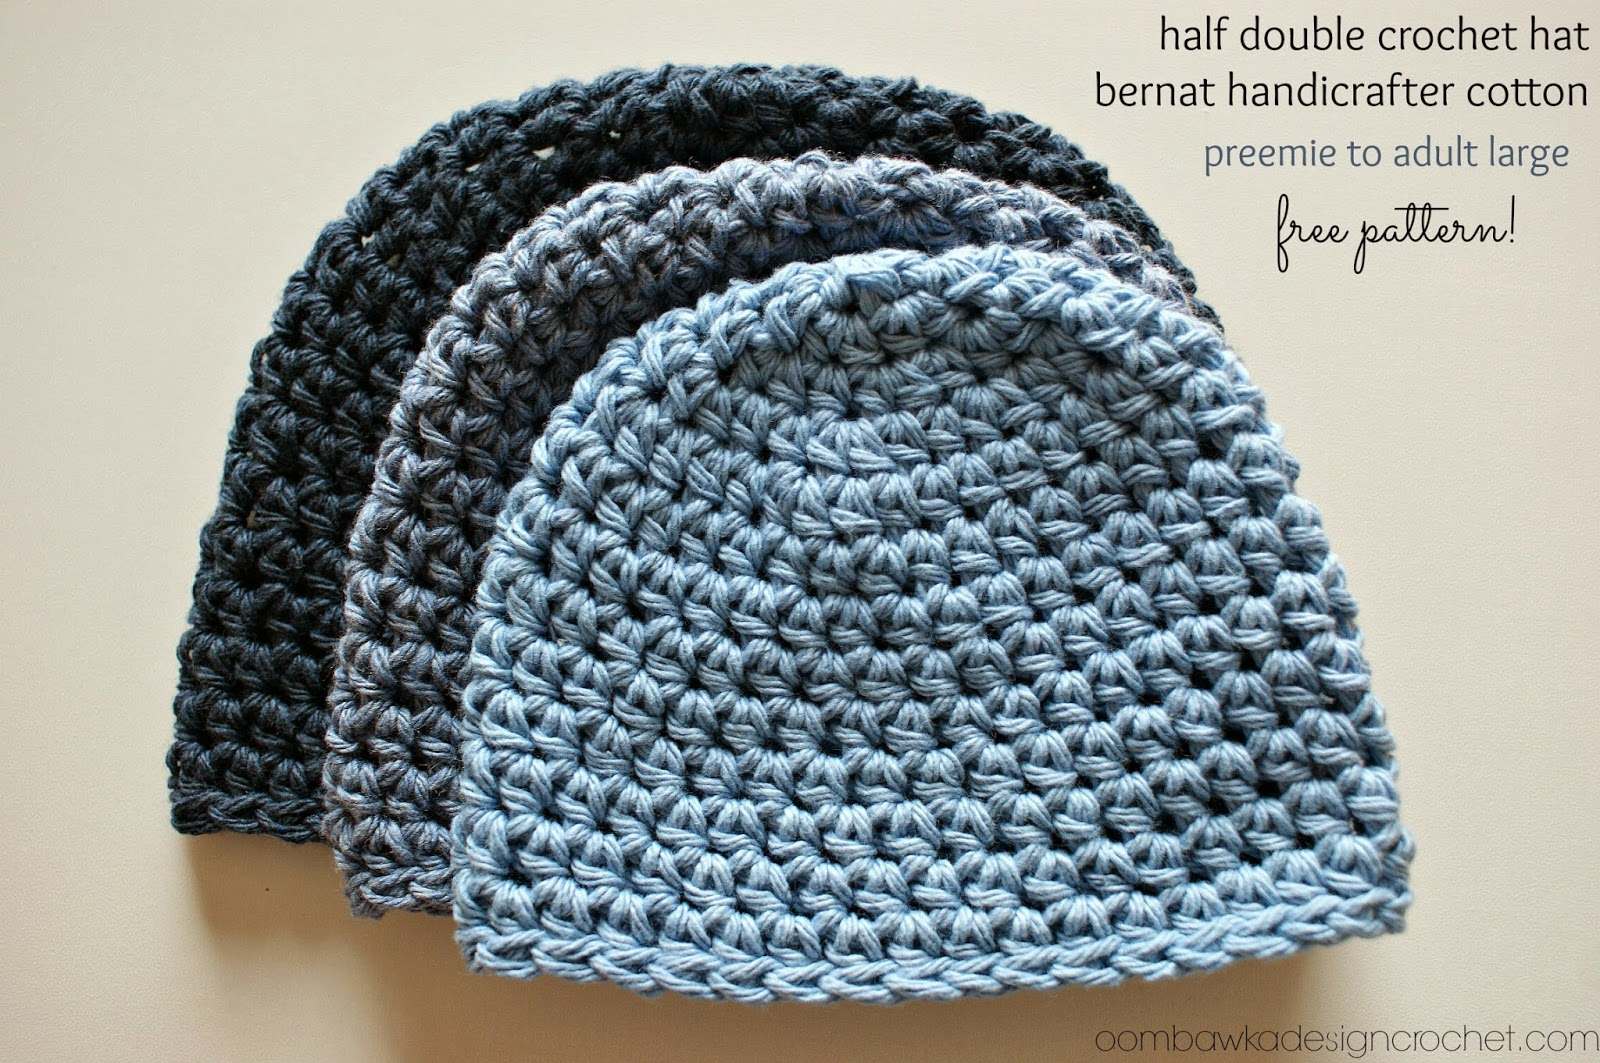 Crochet Patterns Using Cotton Thread : Crochet Hat Pattern #2 Free Crochet Pattern ? Oombawka Design ...